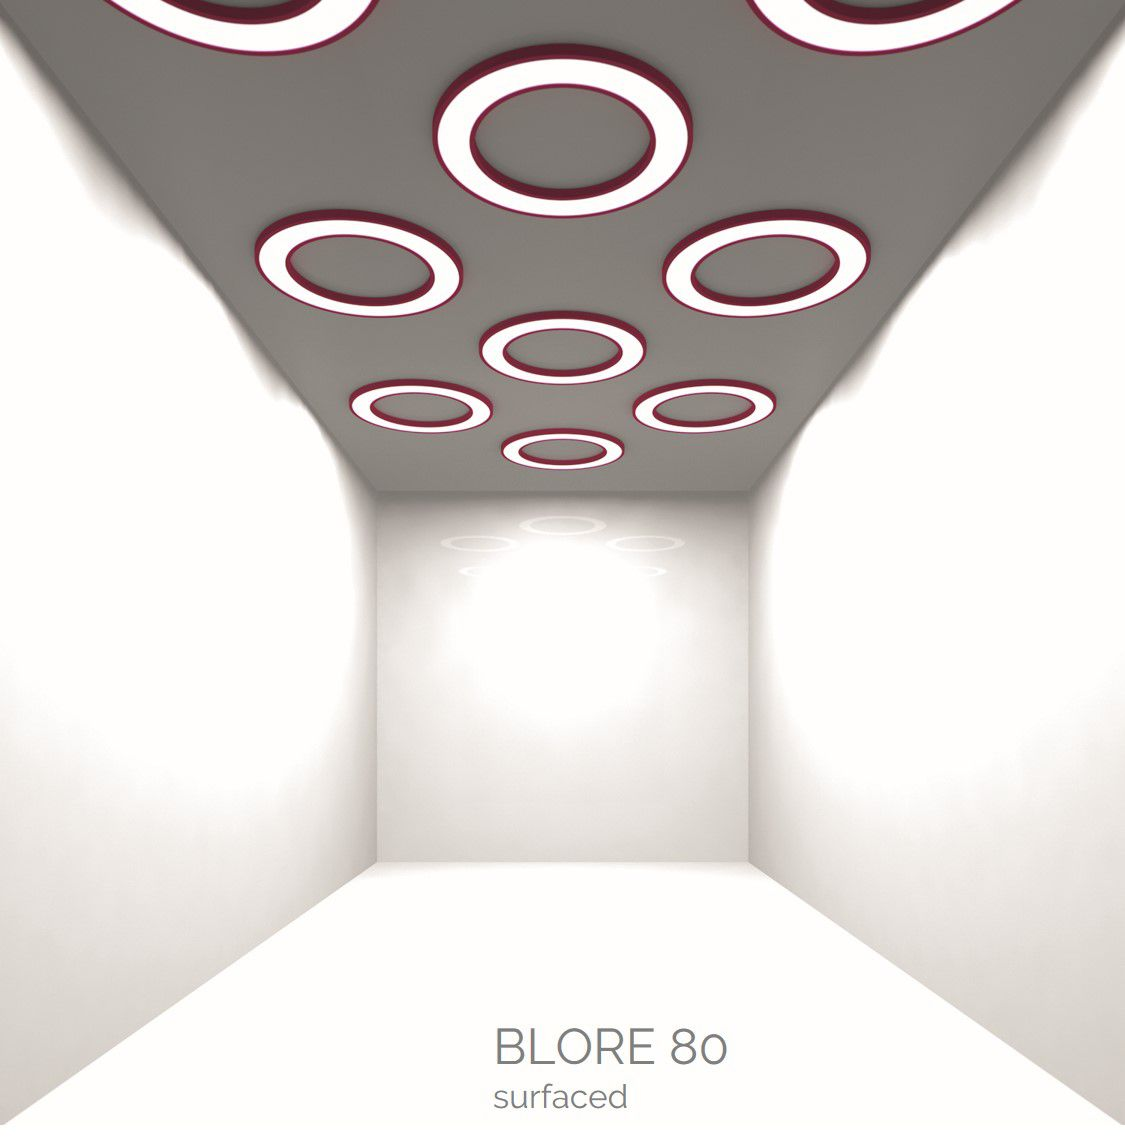 blore 80 opbouw armatuur ring 700x80mm 4000k 3108lm 35w fix